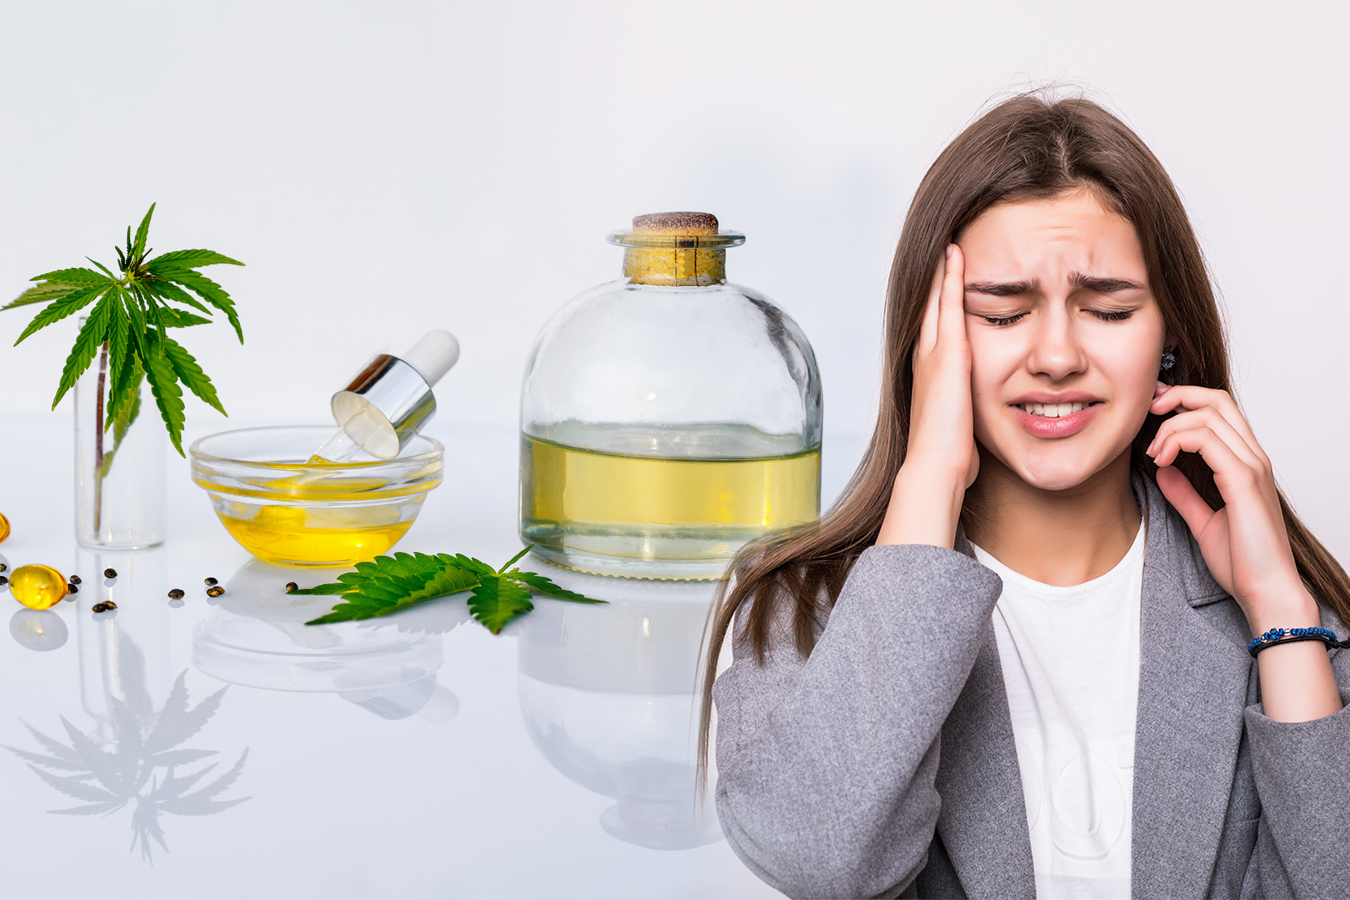 THE USAGE OF MEDICAL MARIJUANA FOR MIGRAINES